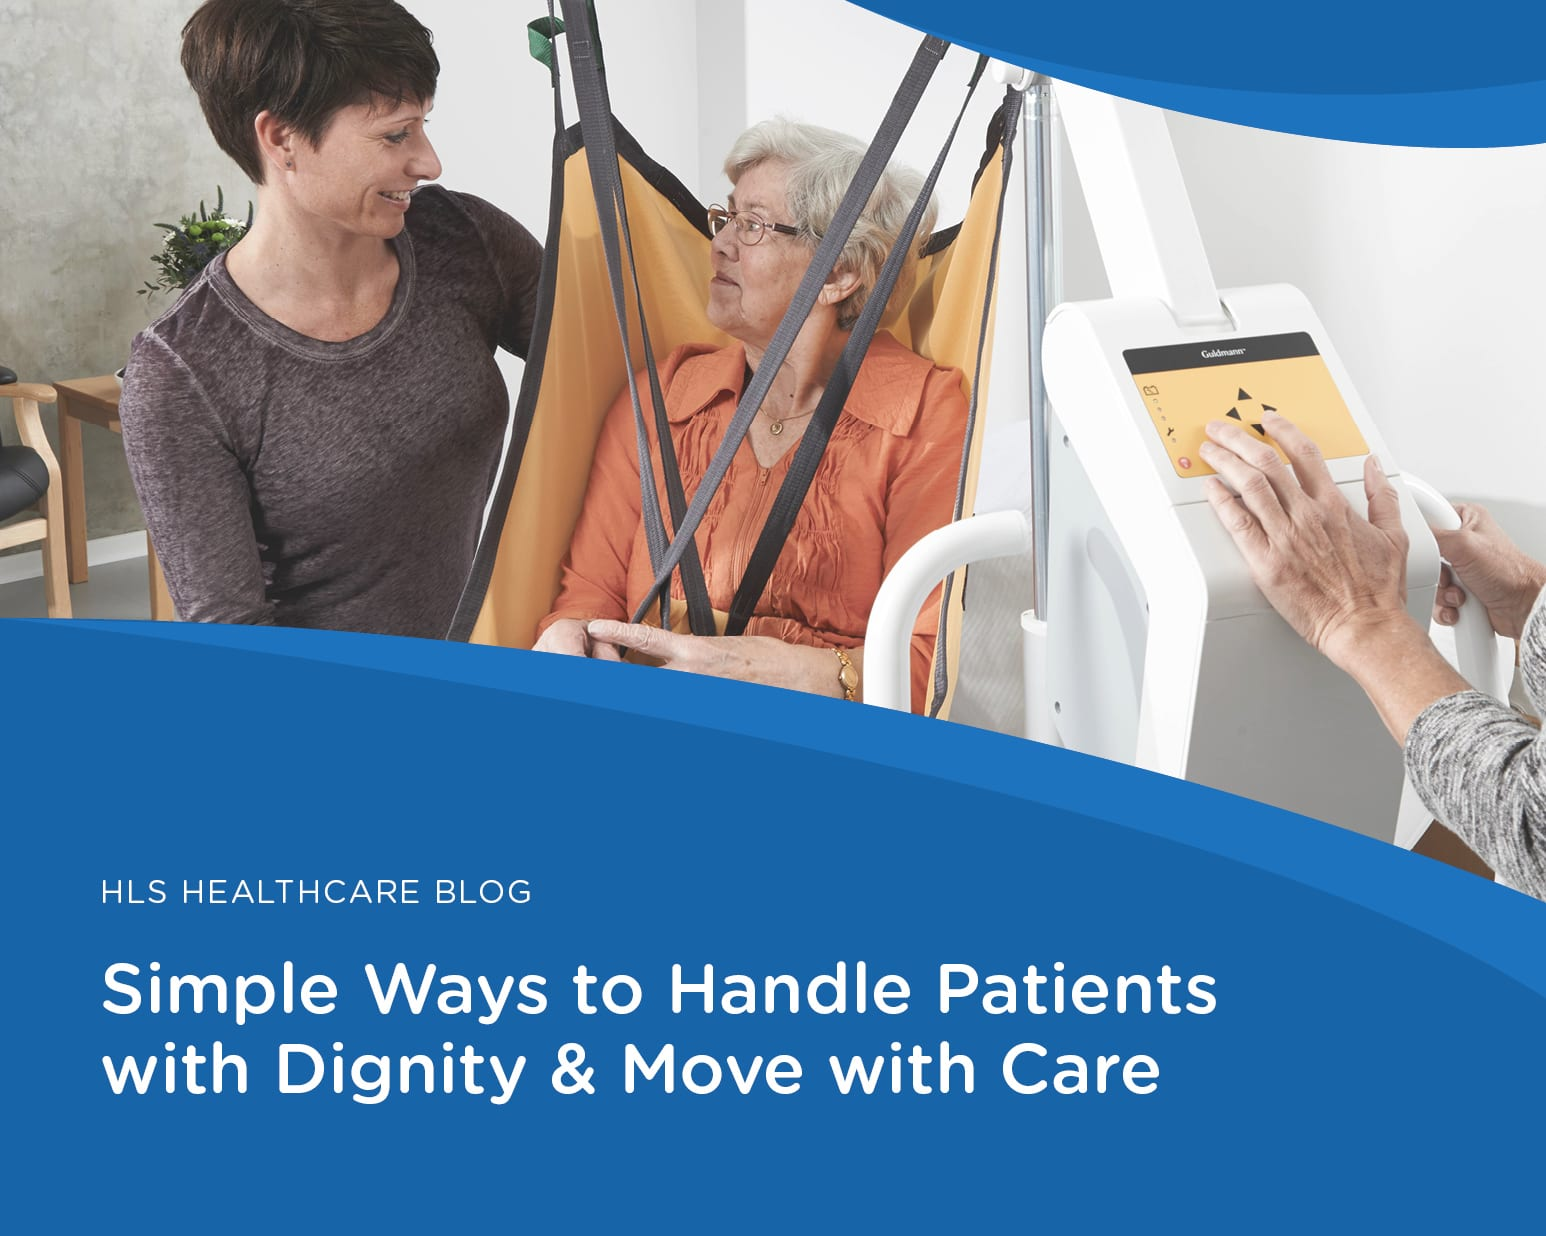 Simple Ways to Handle Patients with Dignity and Move with Care